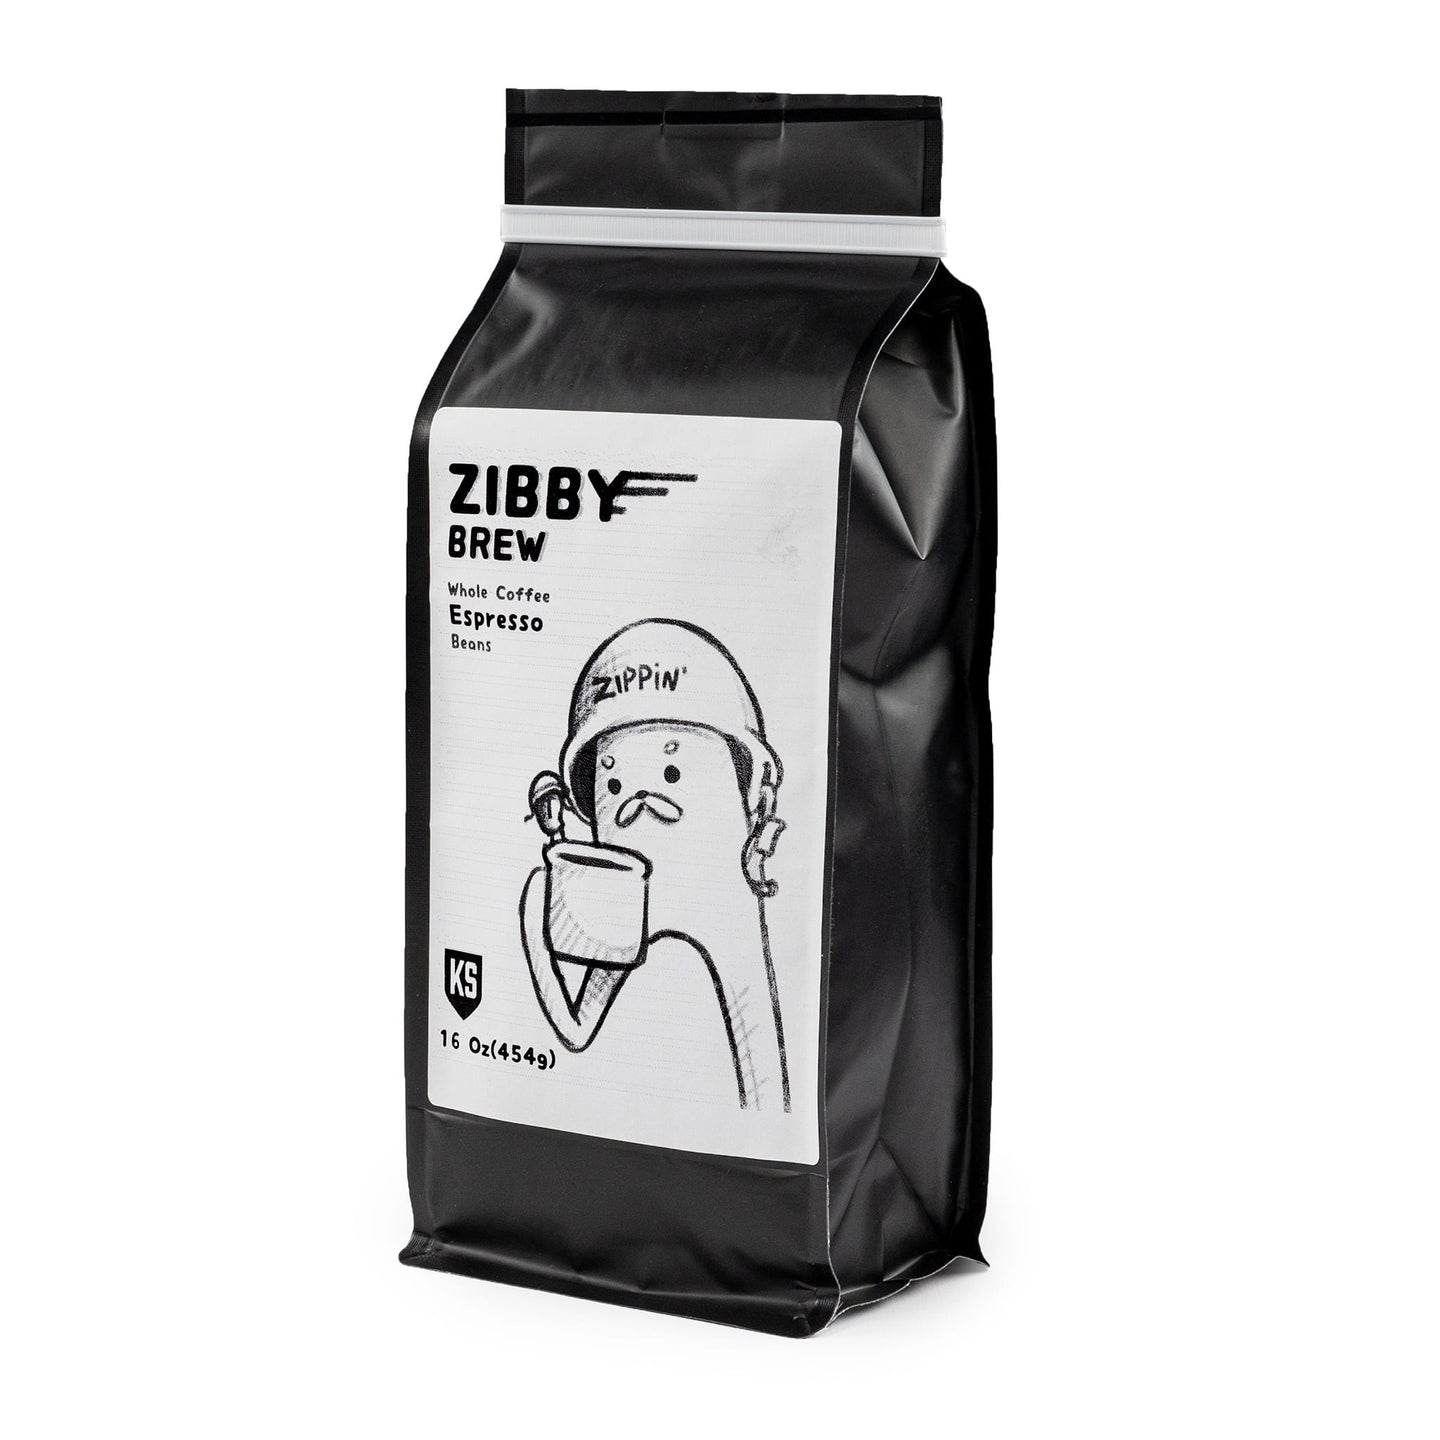 Ivan's Zibby Brew: Whole Coffee Beans